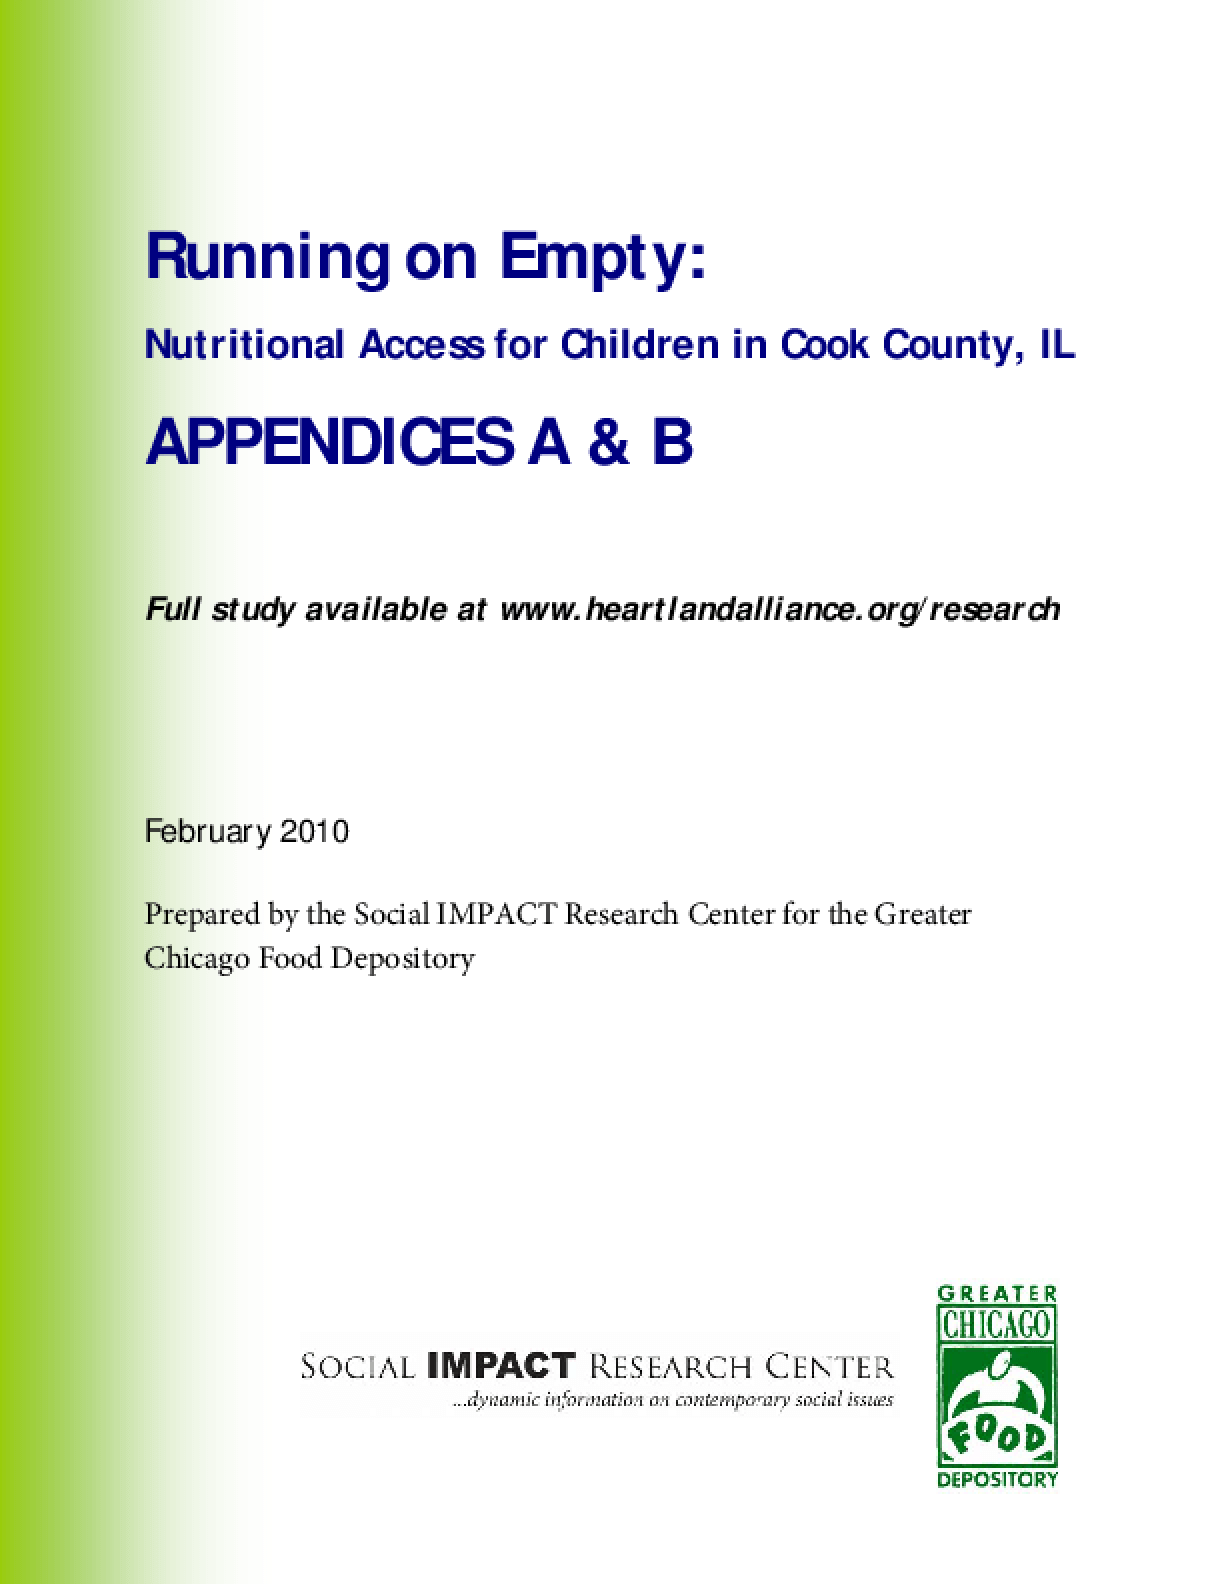 Running on Empty: Nutritional Access for Children in Cook County, IL, Appendices A & B